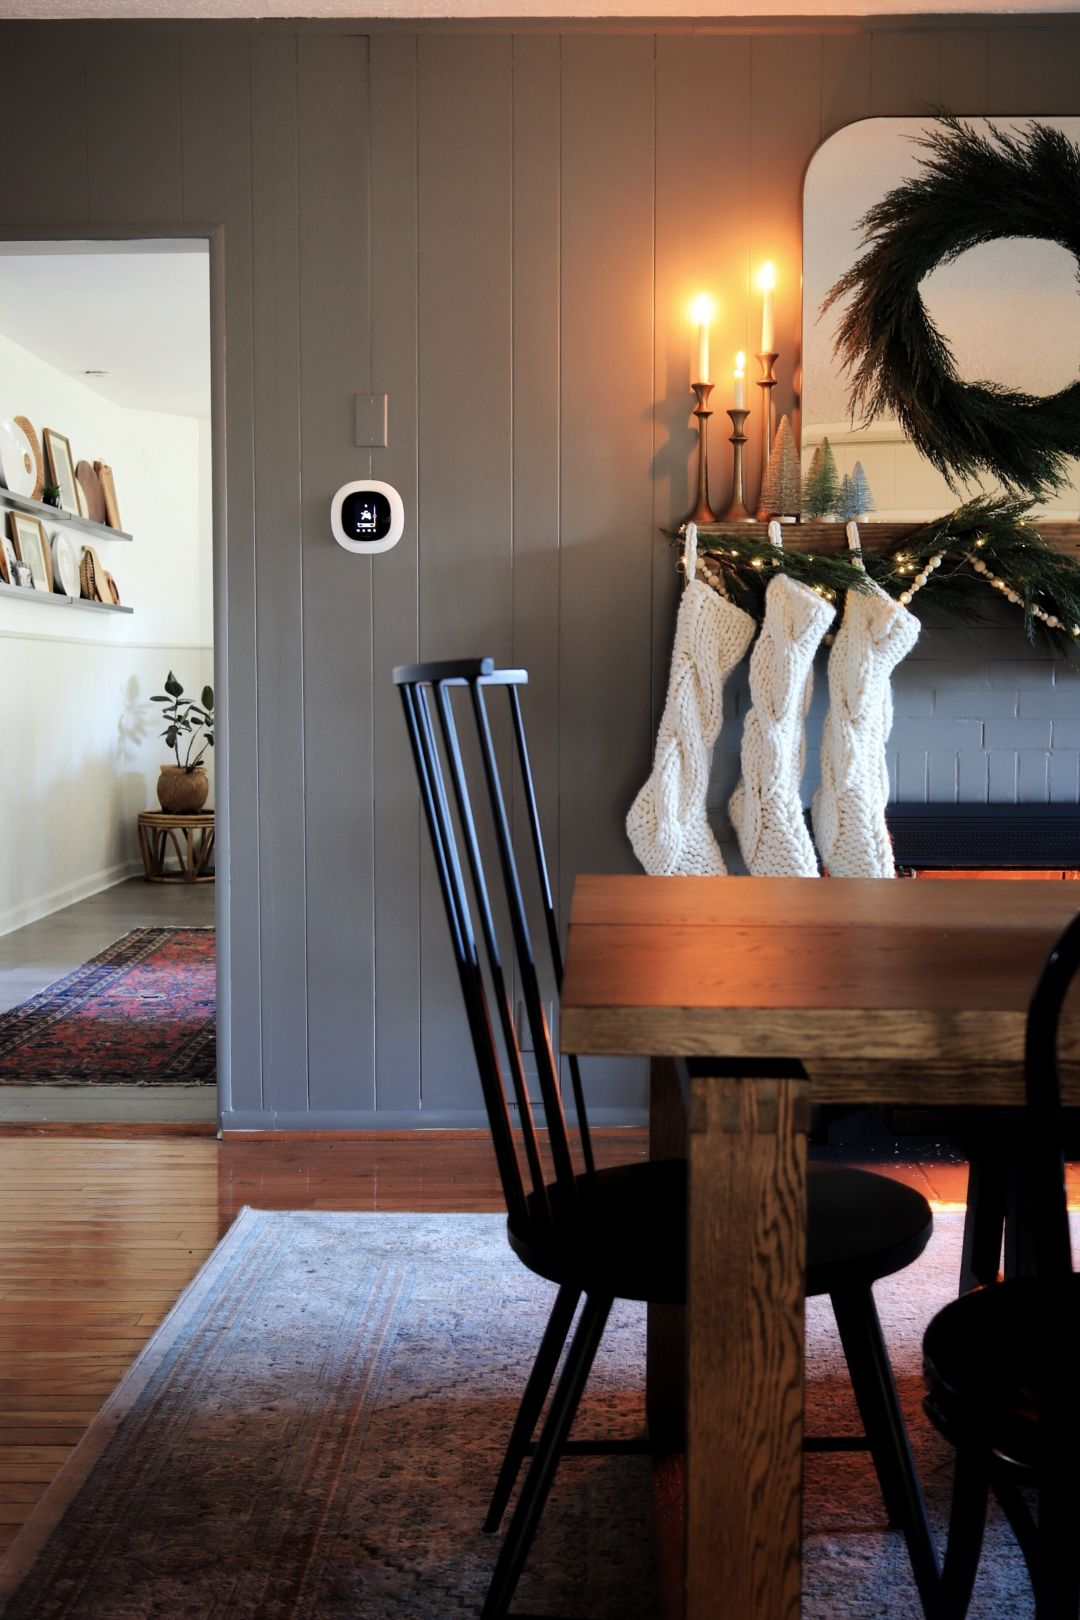 ecobee SmartThermostat with voice control on wall with wreath, stockings, and a fireplace beside it.